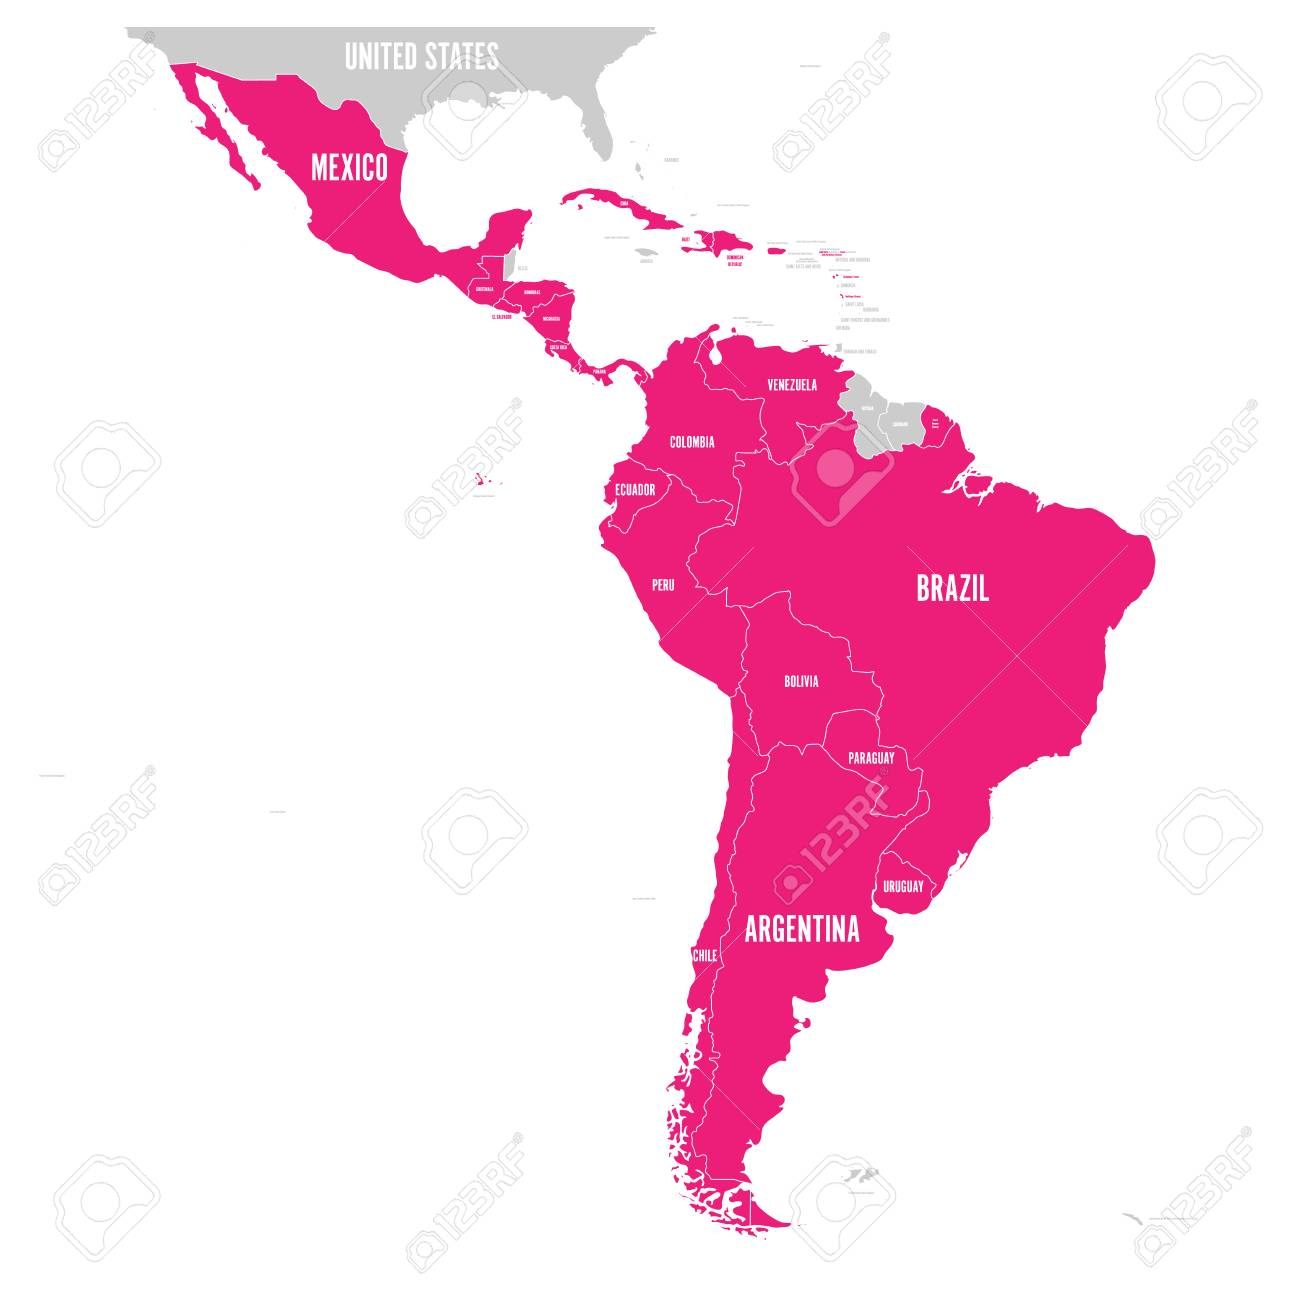 The Map Of America States.Political Map Of Latin America Latin American States Pink Highlighted